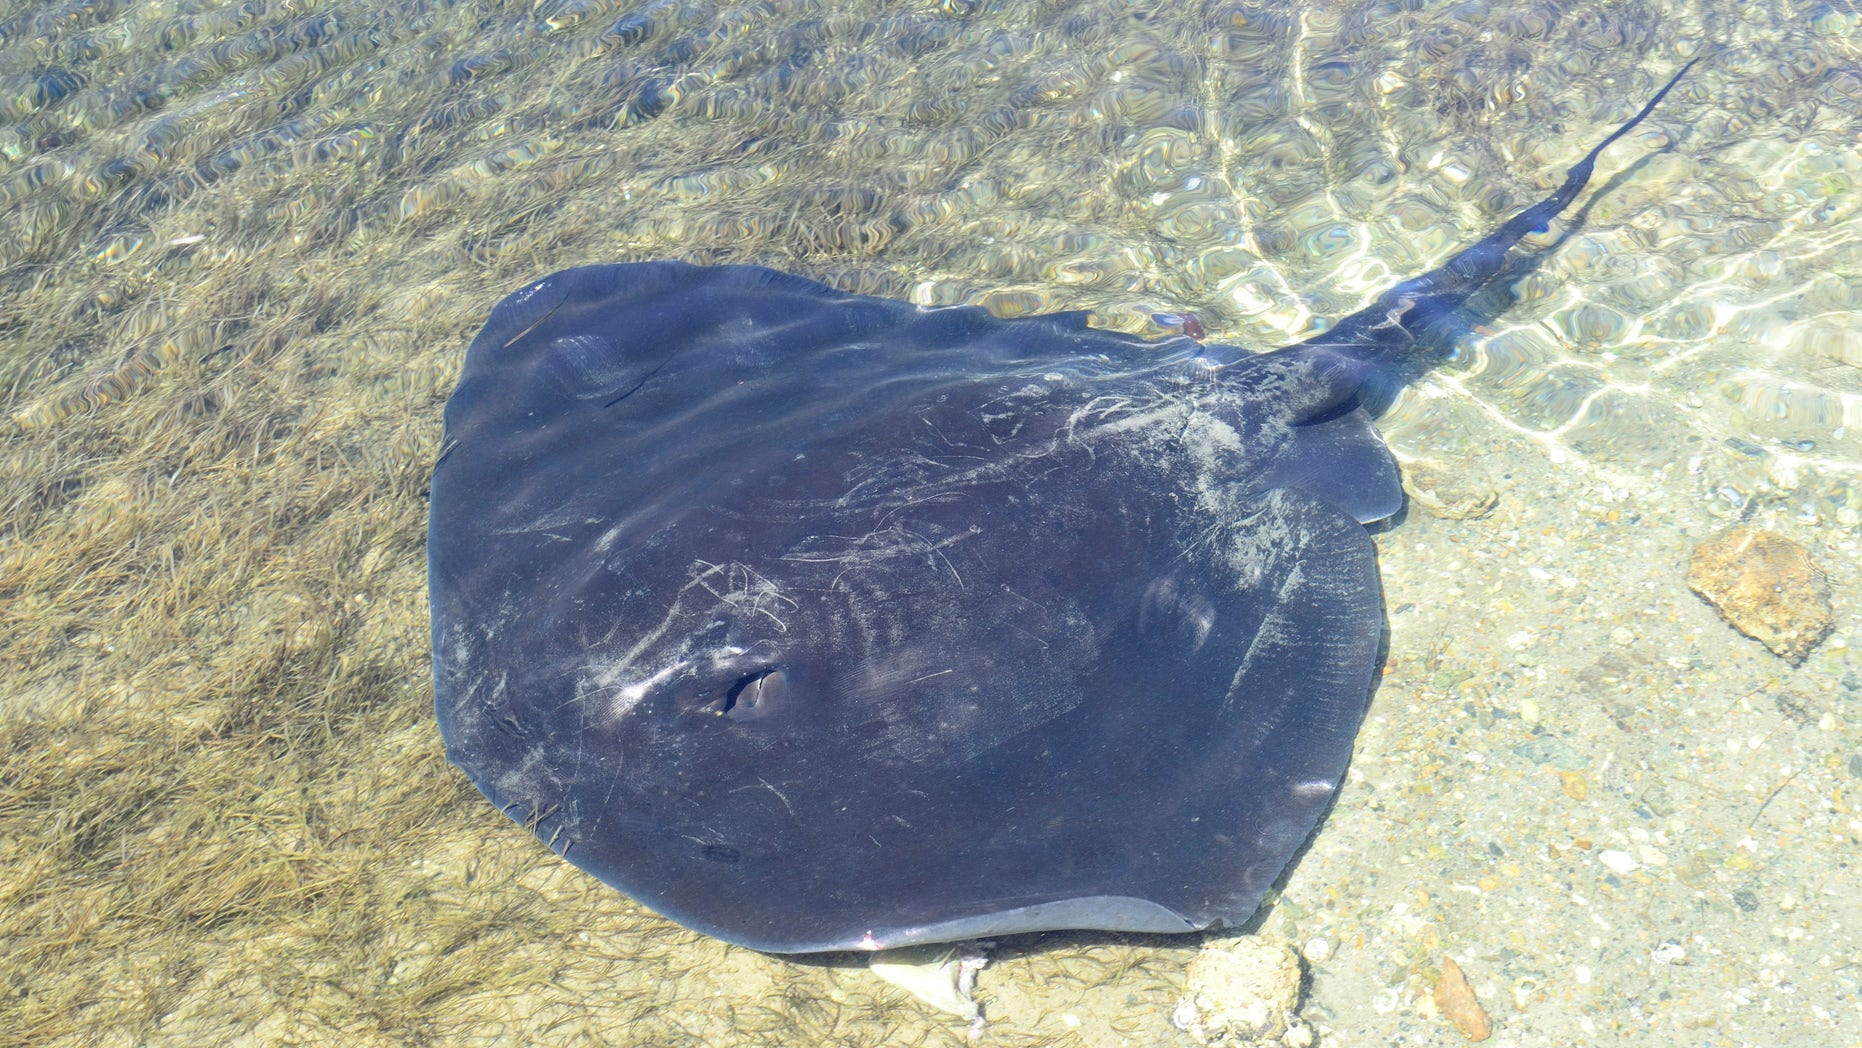 Swimmer dies after being stung by stingray in Australia